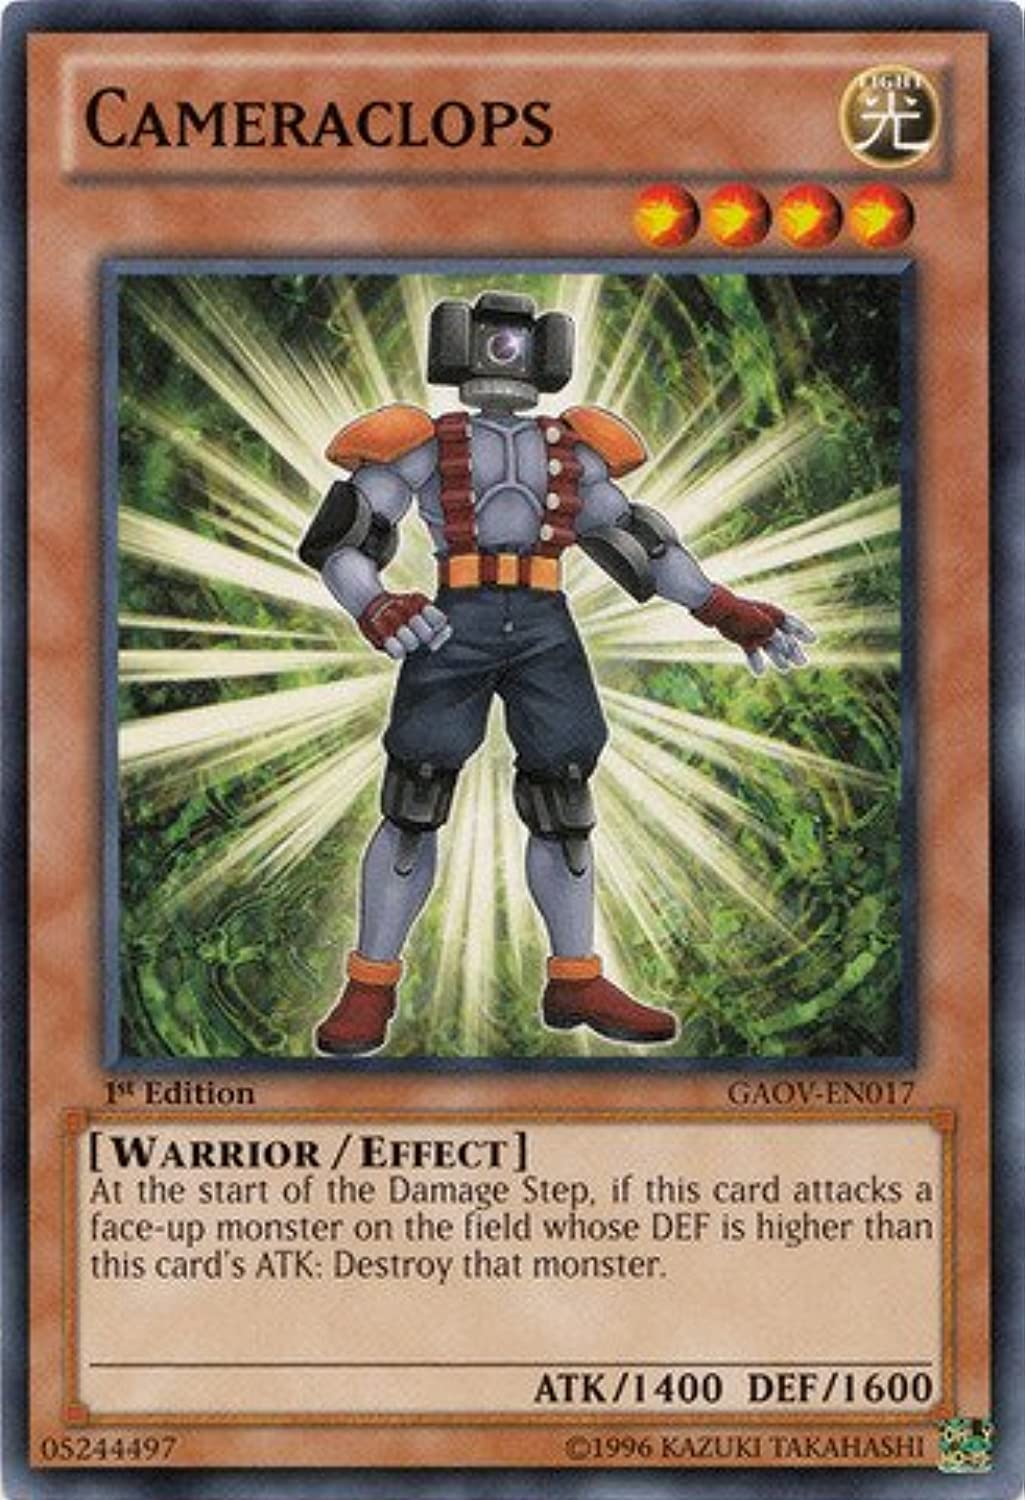 YuGiOh   Cameraclops (GAOVEN017)  Galactic Overlord  Unlimited Edition  Common